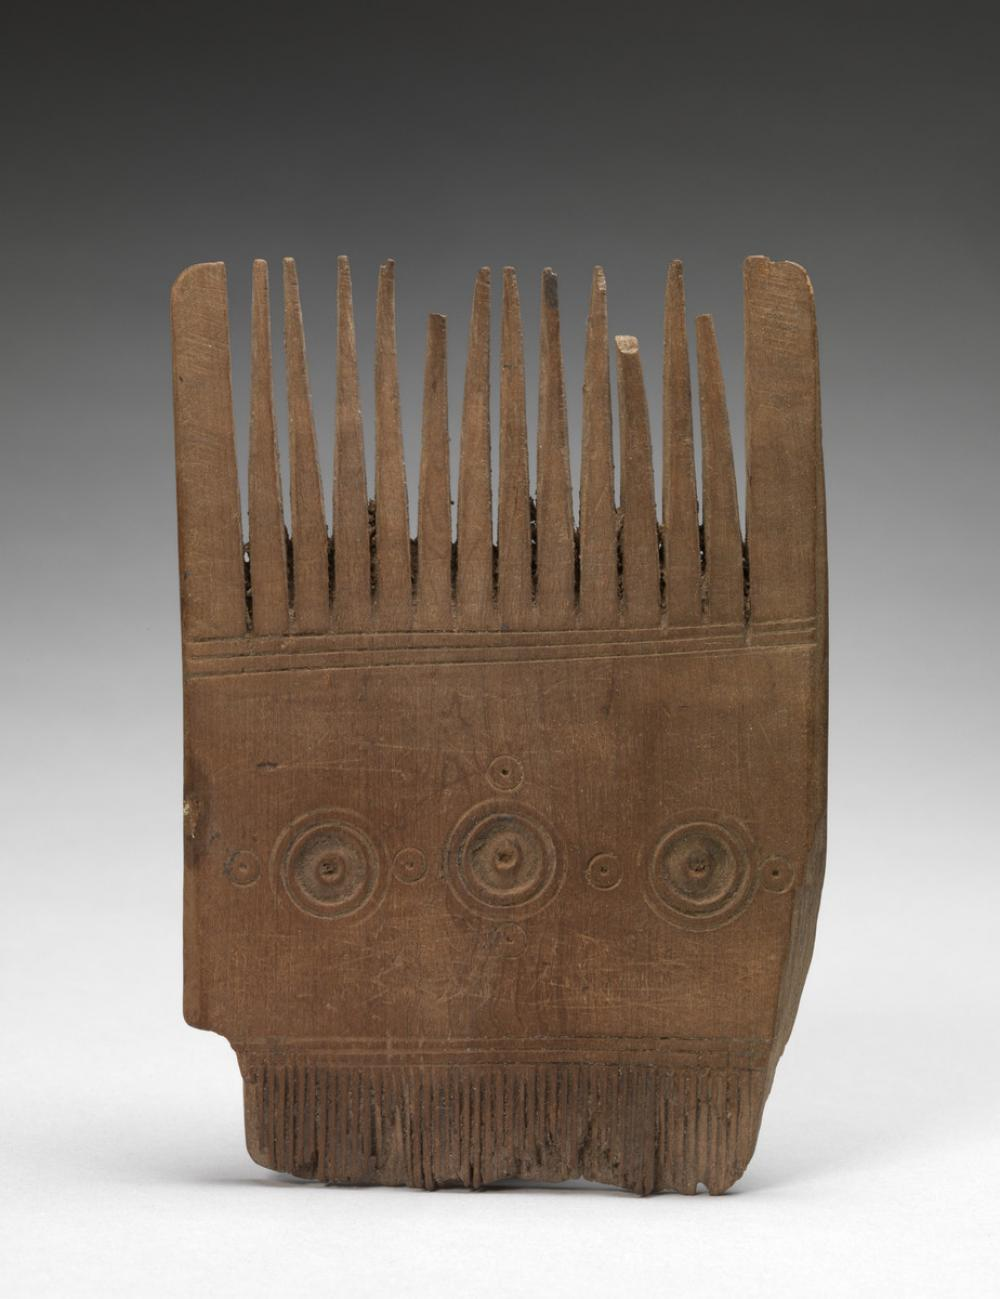 Egyptian, Comb with concentric circles